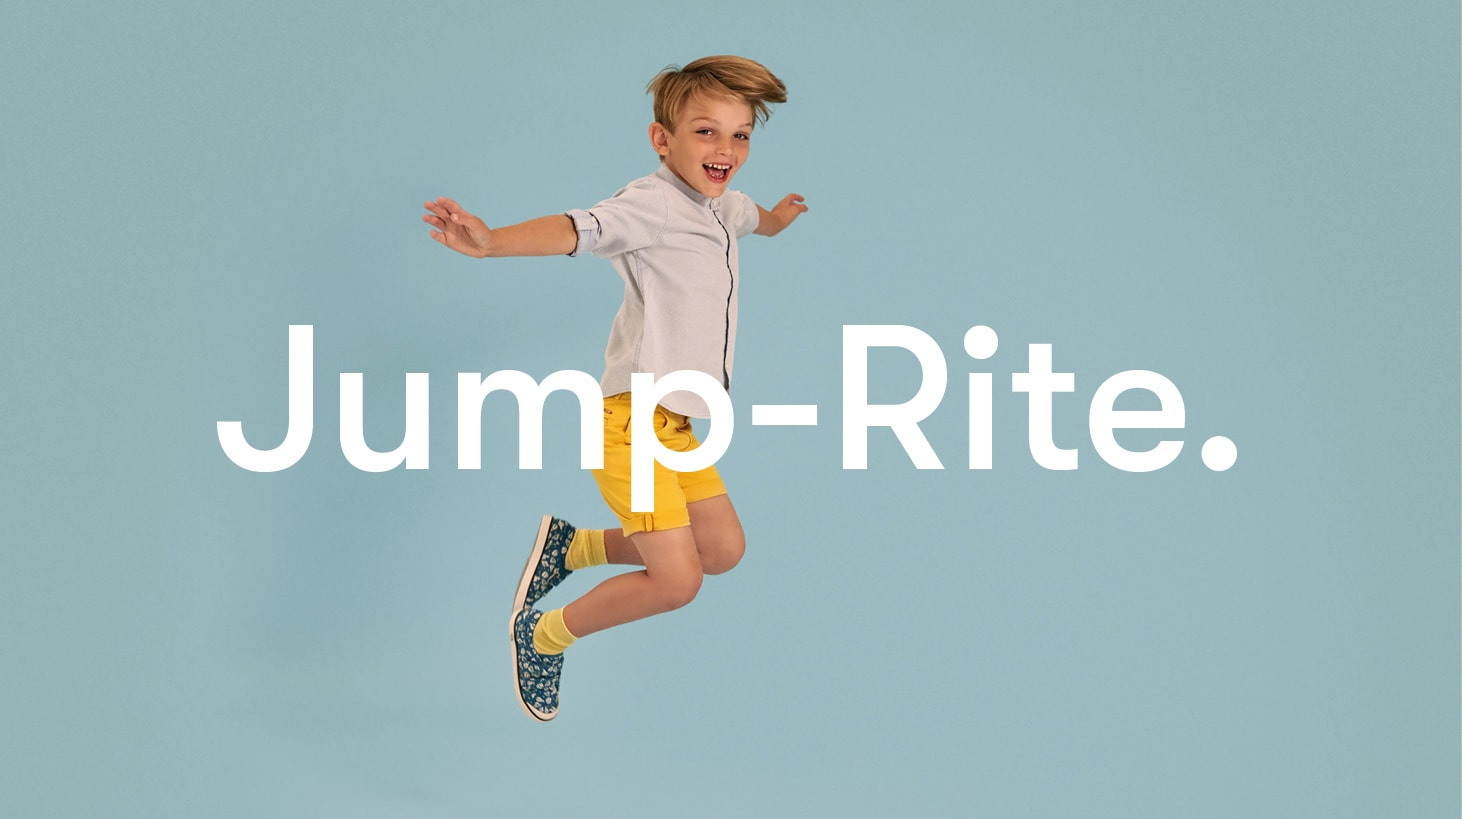 Start-Rite campaign imagery